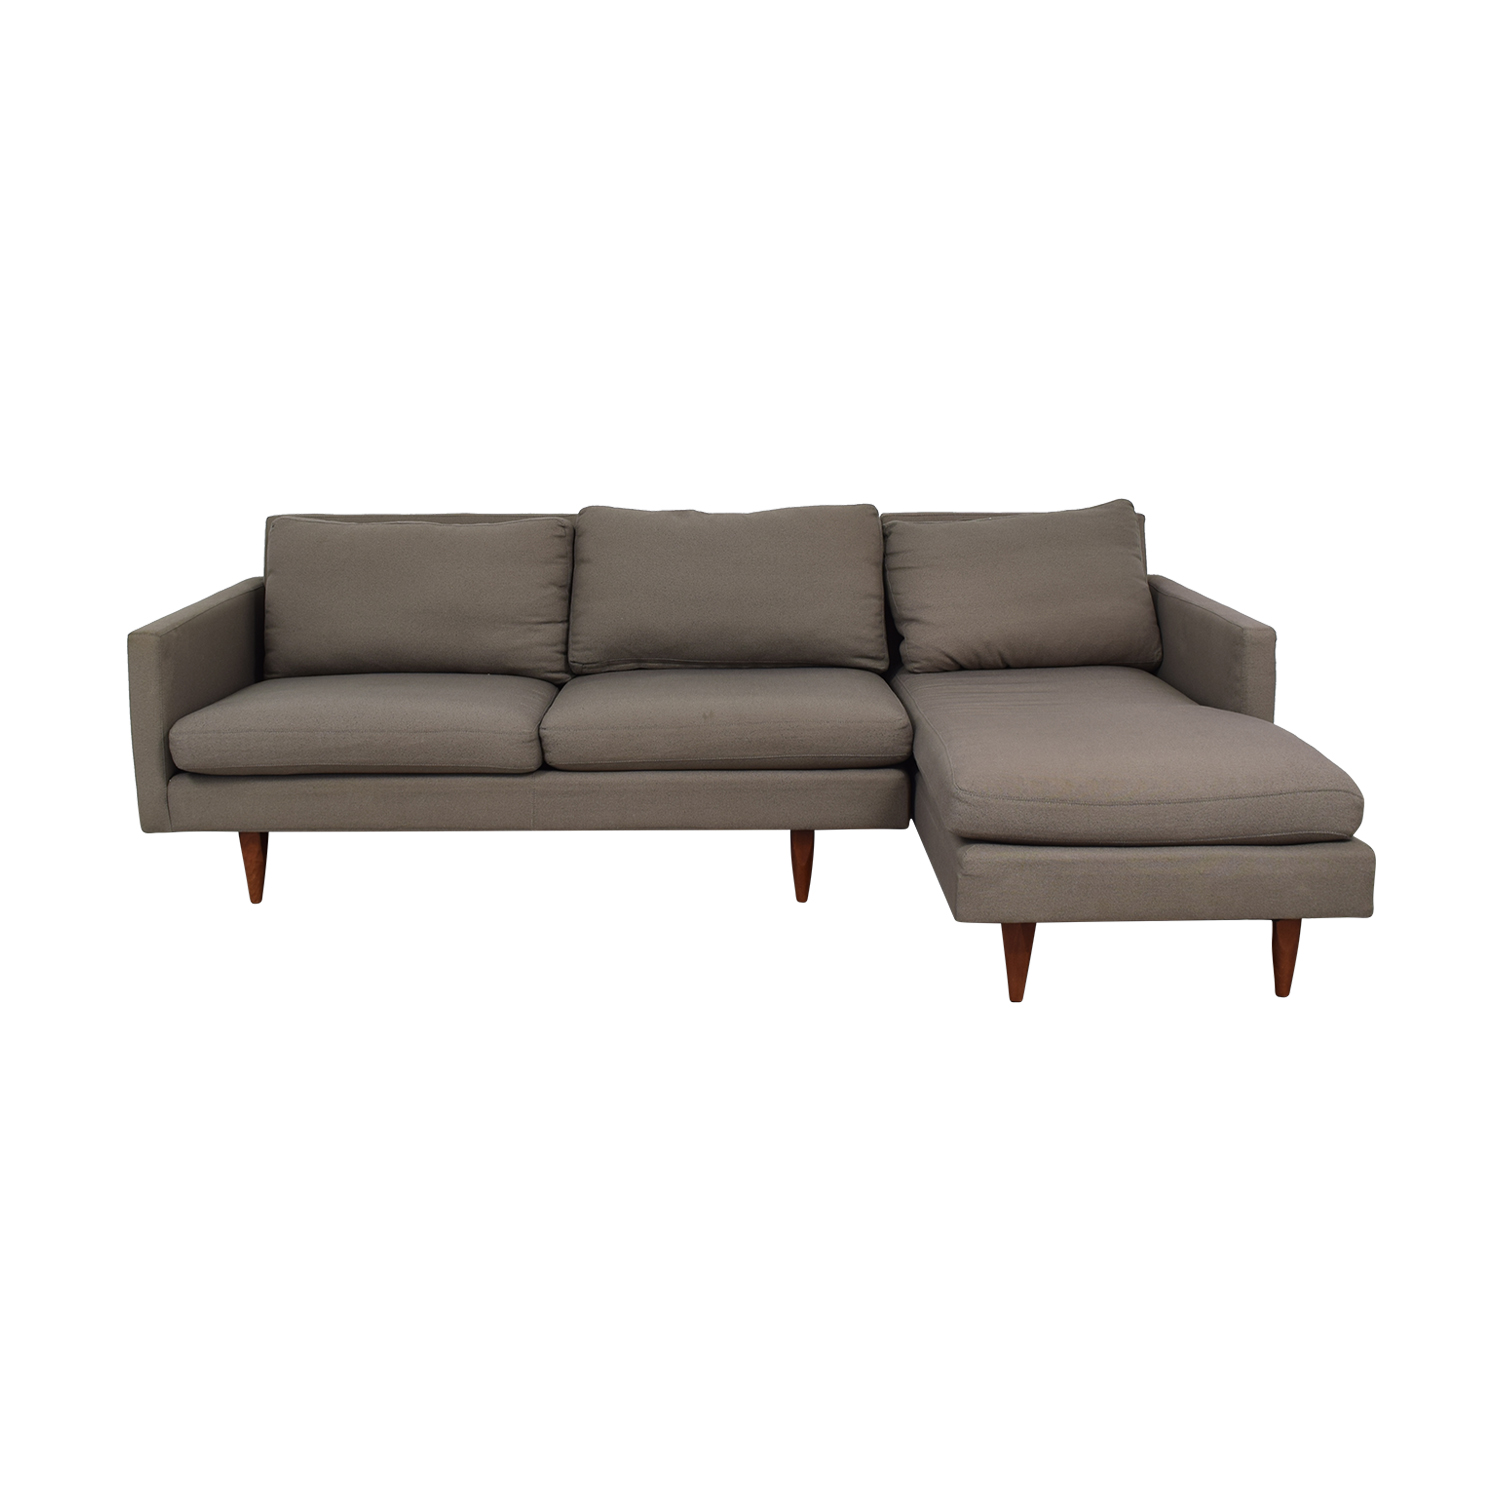 Room & Board Room & Board Jasper Grey Chaise Sectional coupon